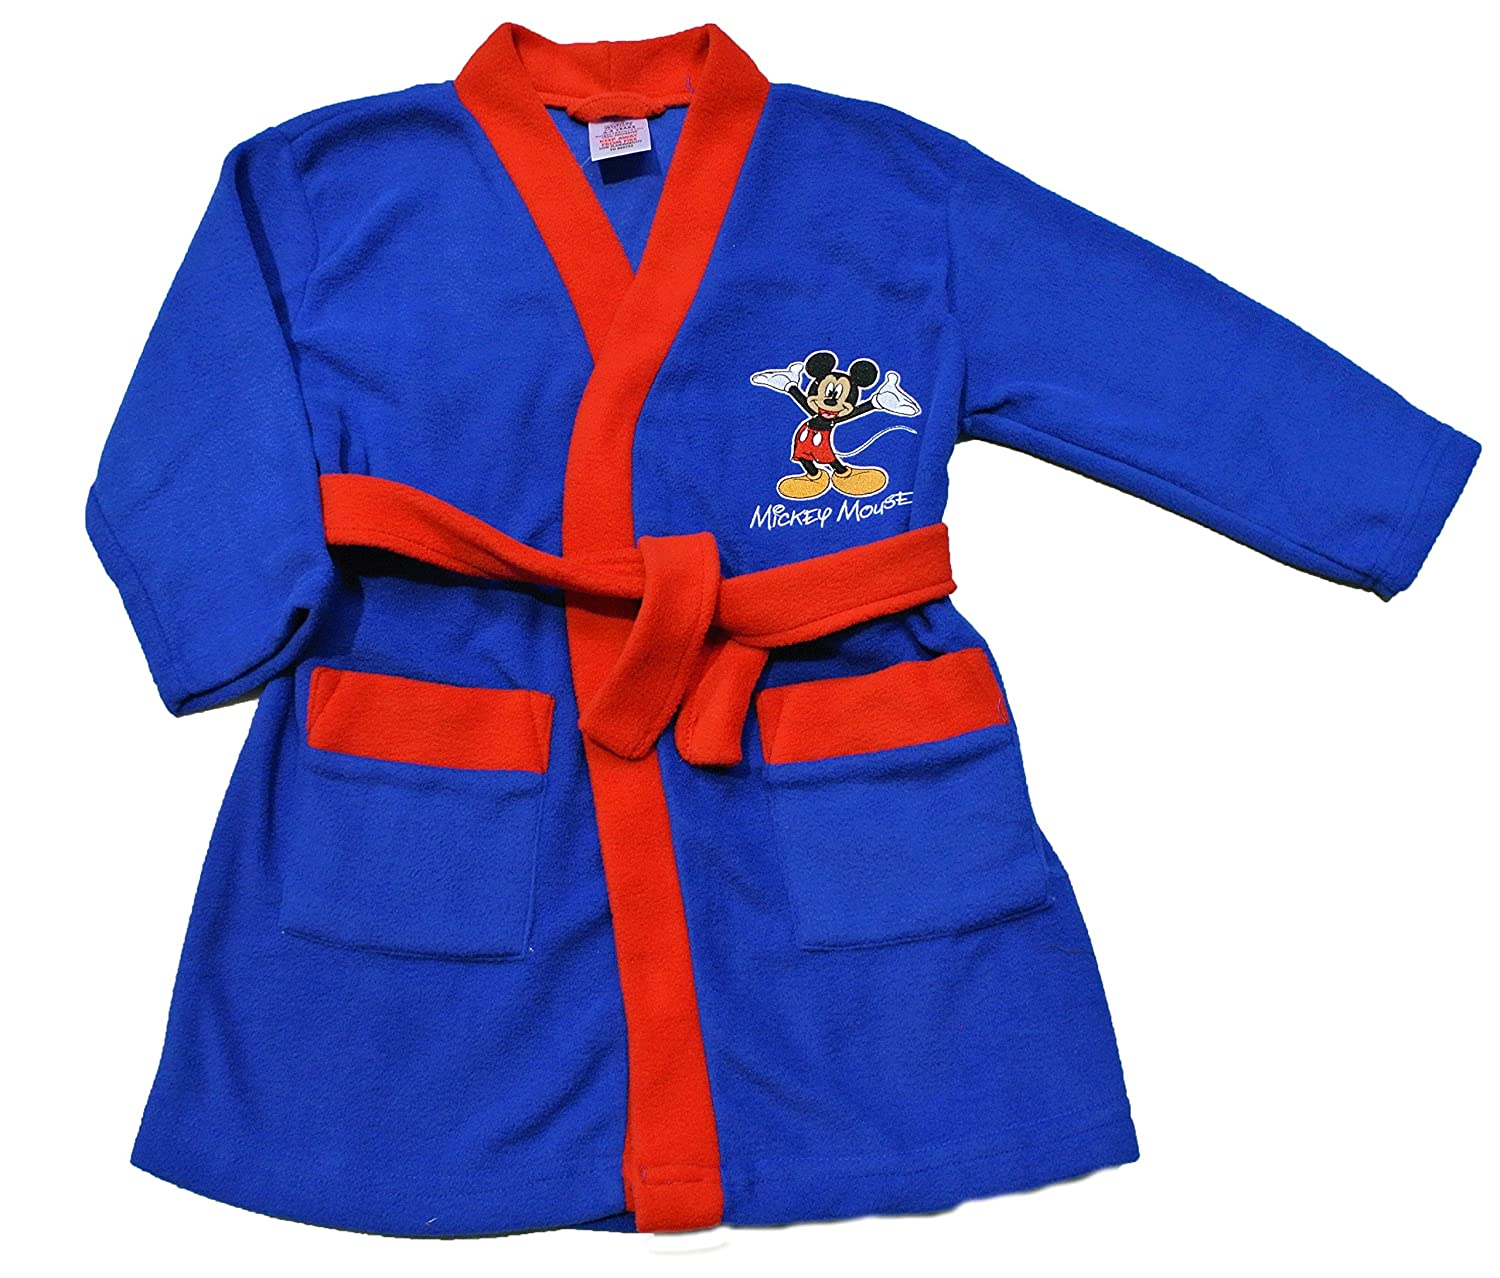 ThePyjamaFactory Boy's Disney Mickey Mouse Dressing Gown, Blue and Red, 1 to 5 Years